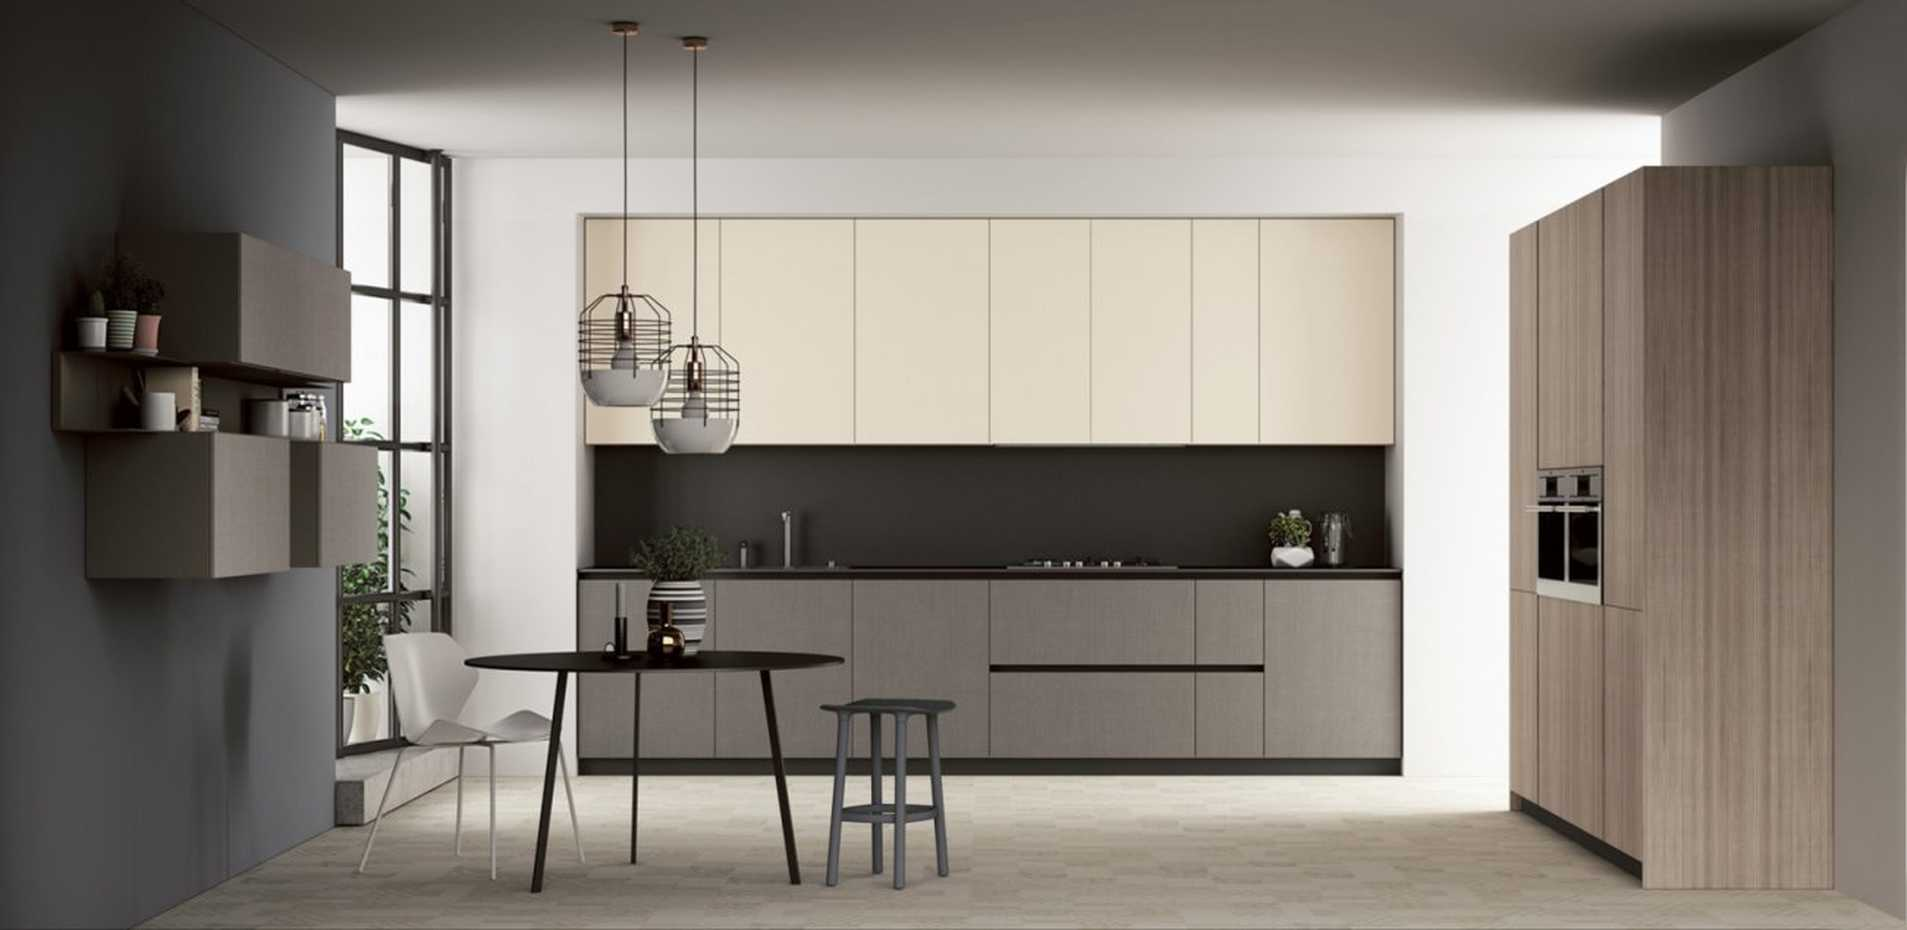 Fjord by Doimo Cucine product image 9